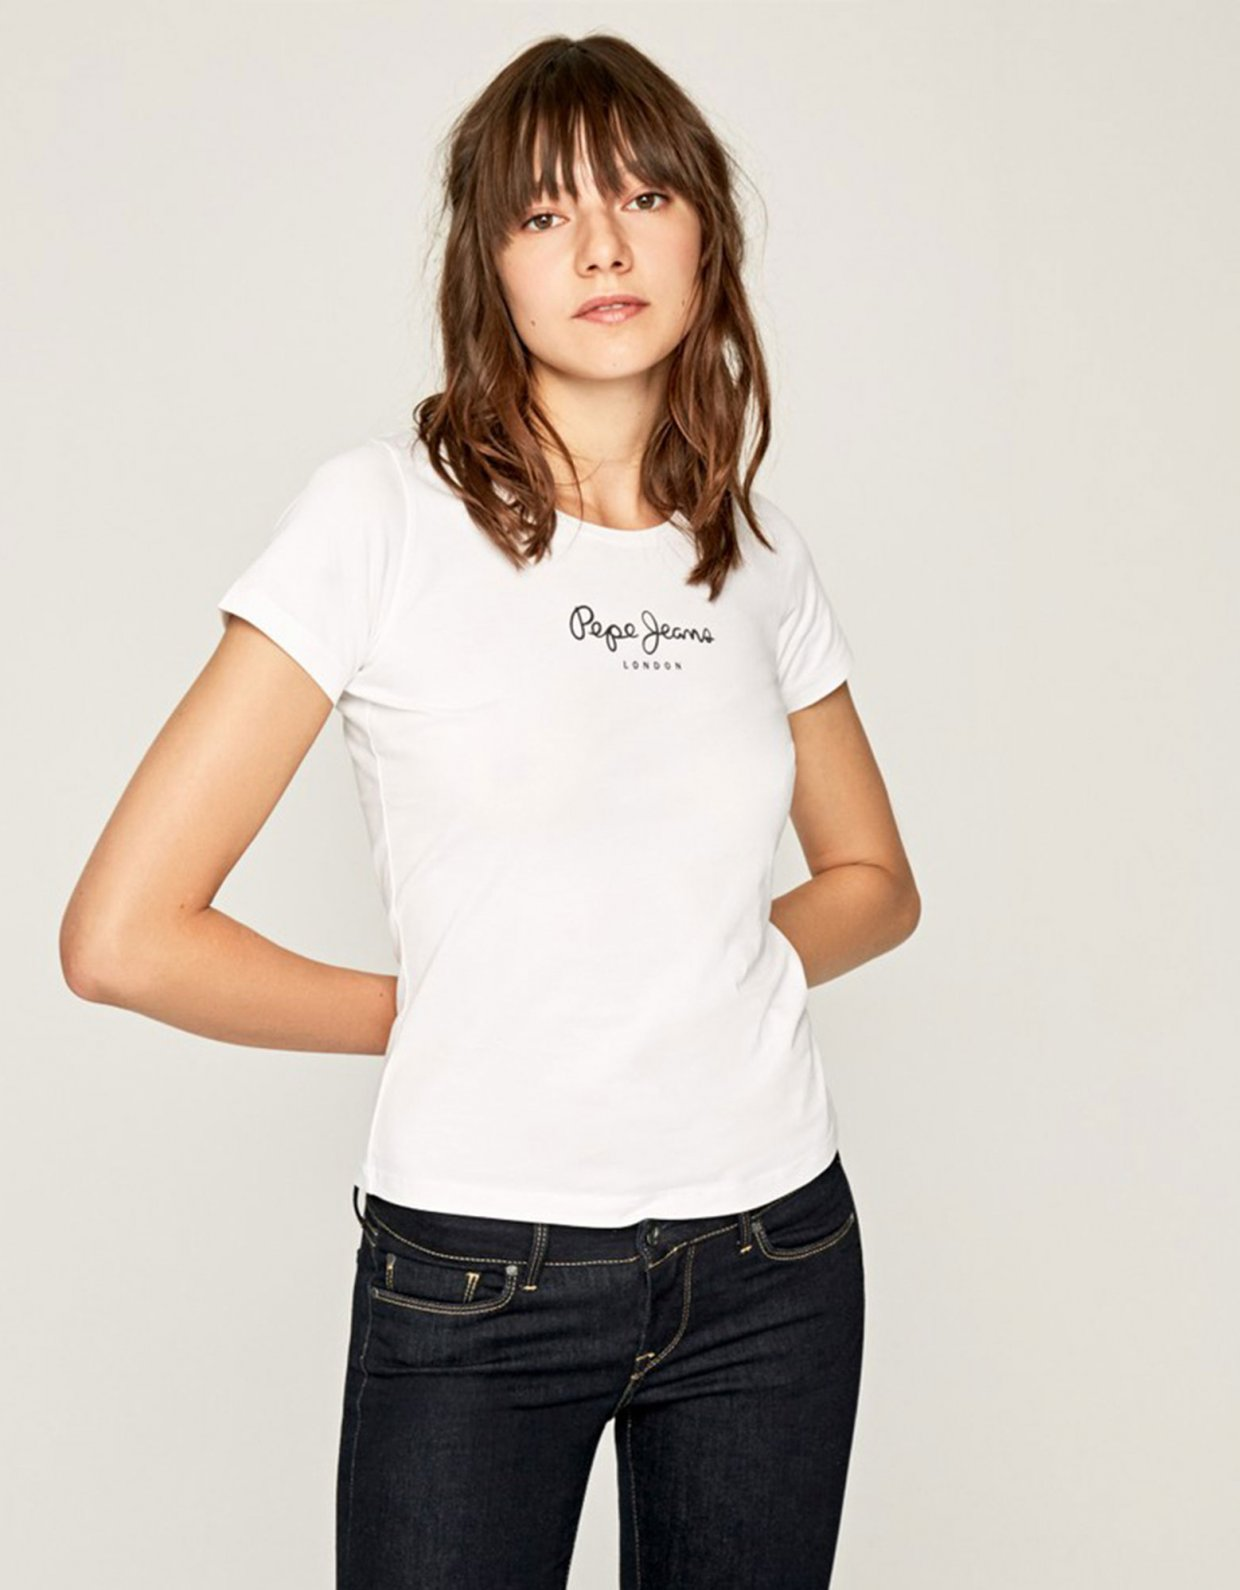 PEPE JEANS New Virginia t-shirt white